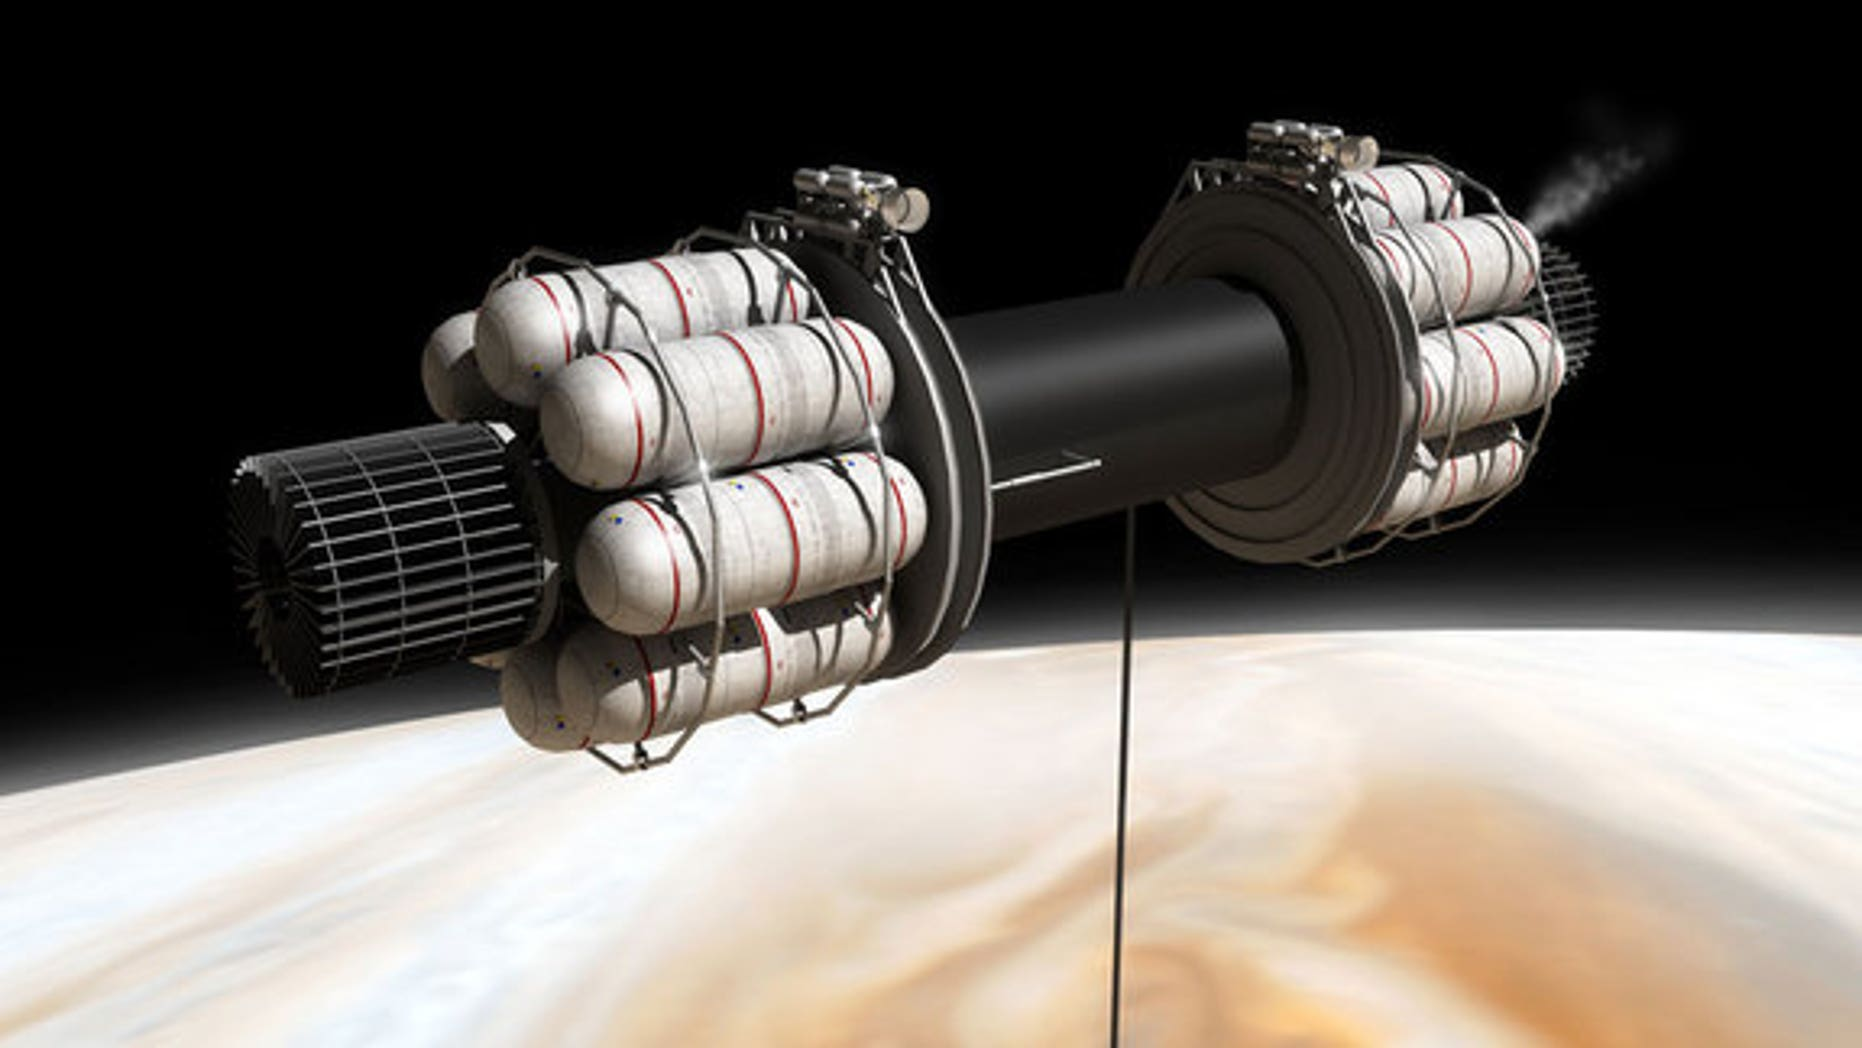 Obtaining the exotic fuels needed for interstellar flight is a major challenge – here a scheme is shown where a spacecraft in low orbit around Jupiter lowers an extremely long tube into the atmosphere, sucking up and processing gases.